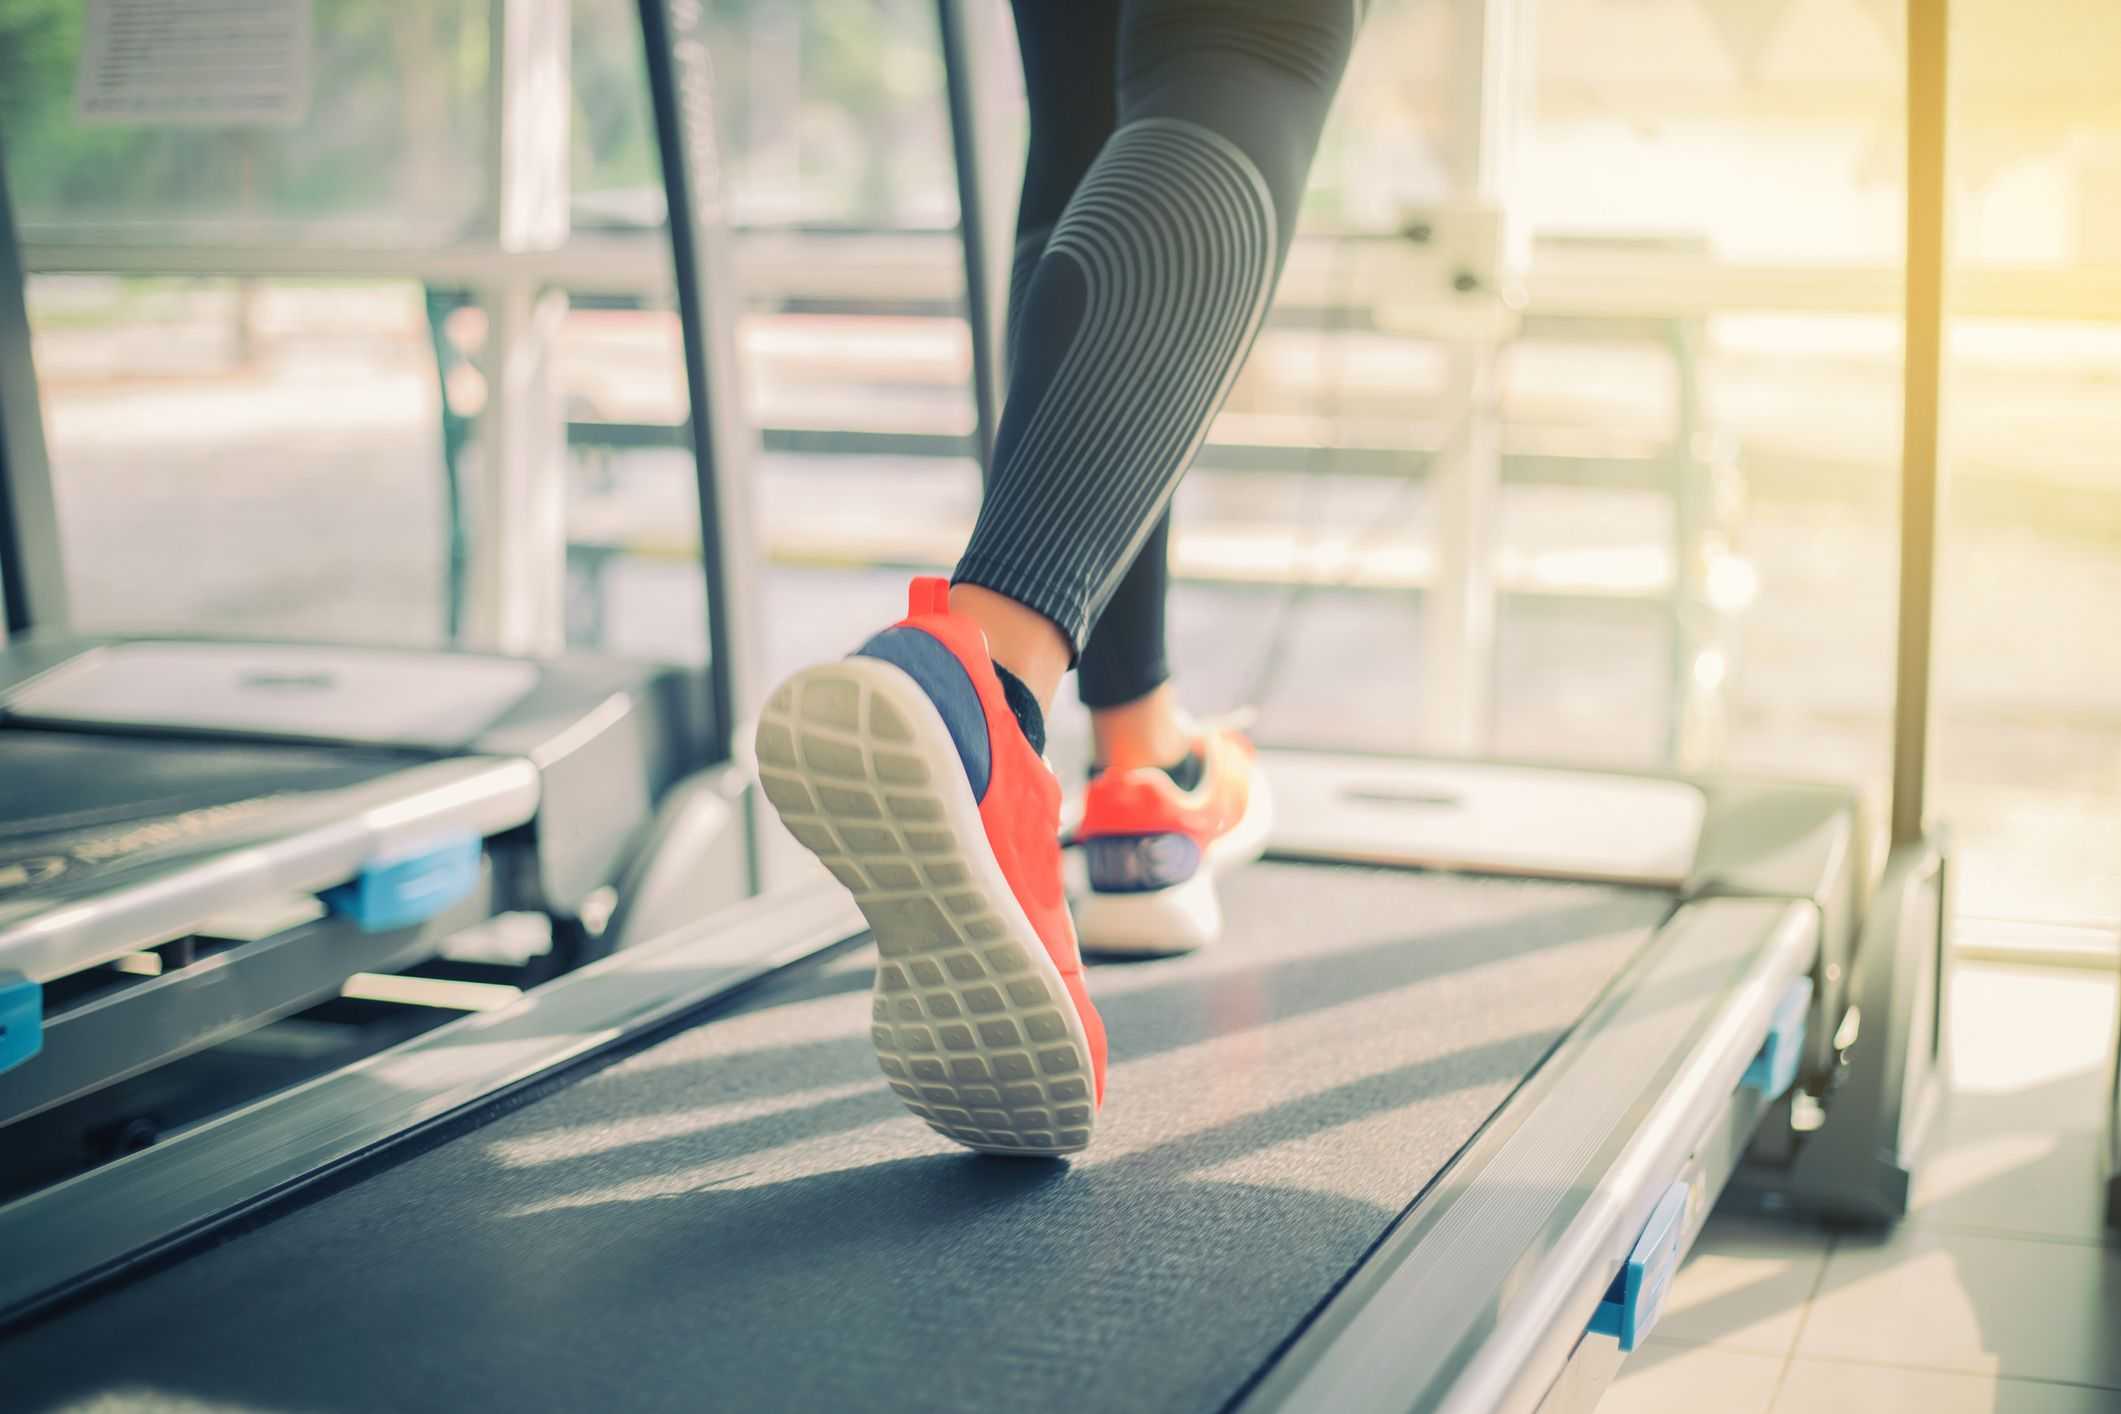 How Effective Is Running on the Treadmill vs. Running Outside?